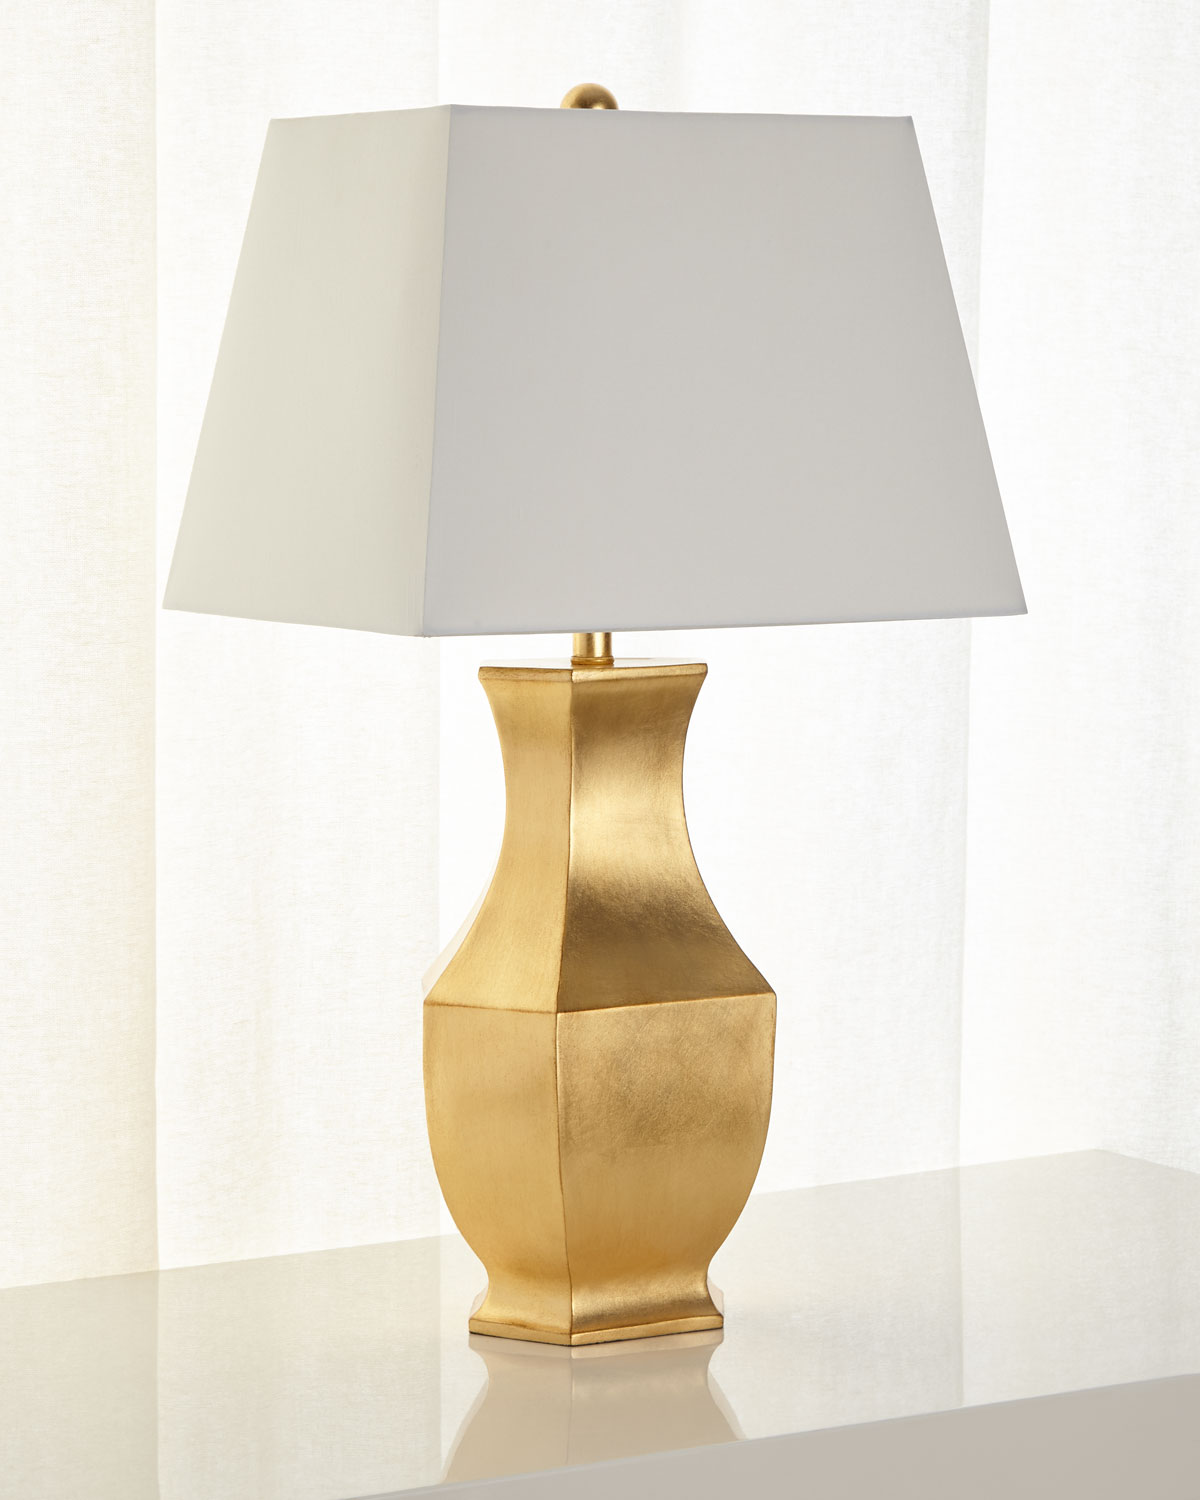 for has by designer leaf ll sweden schumacher the green australian peter created furniture contemporist lamp